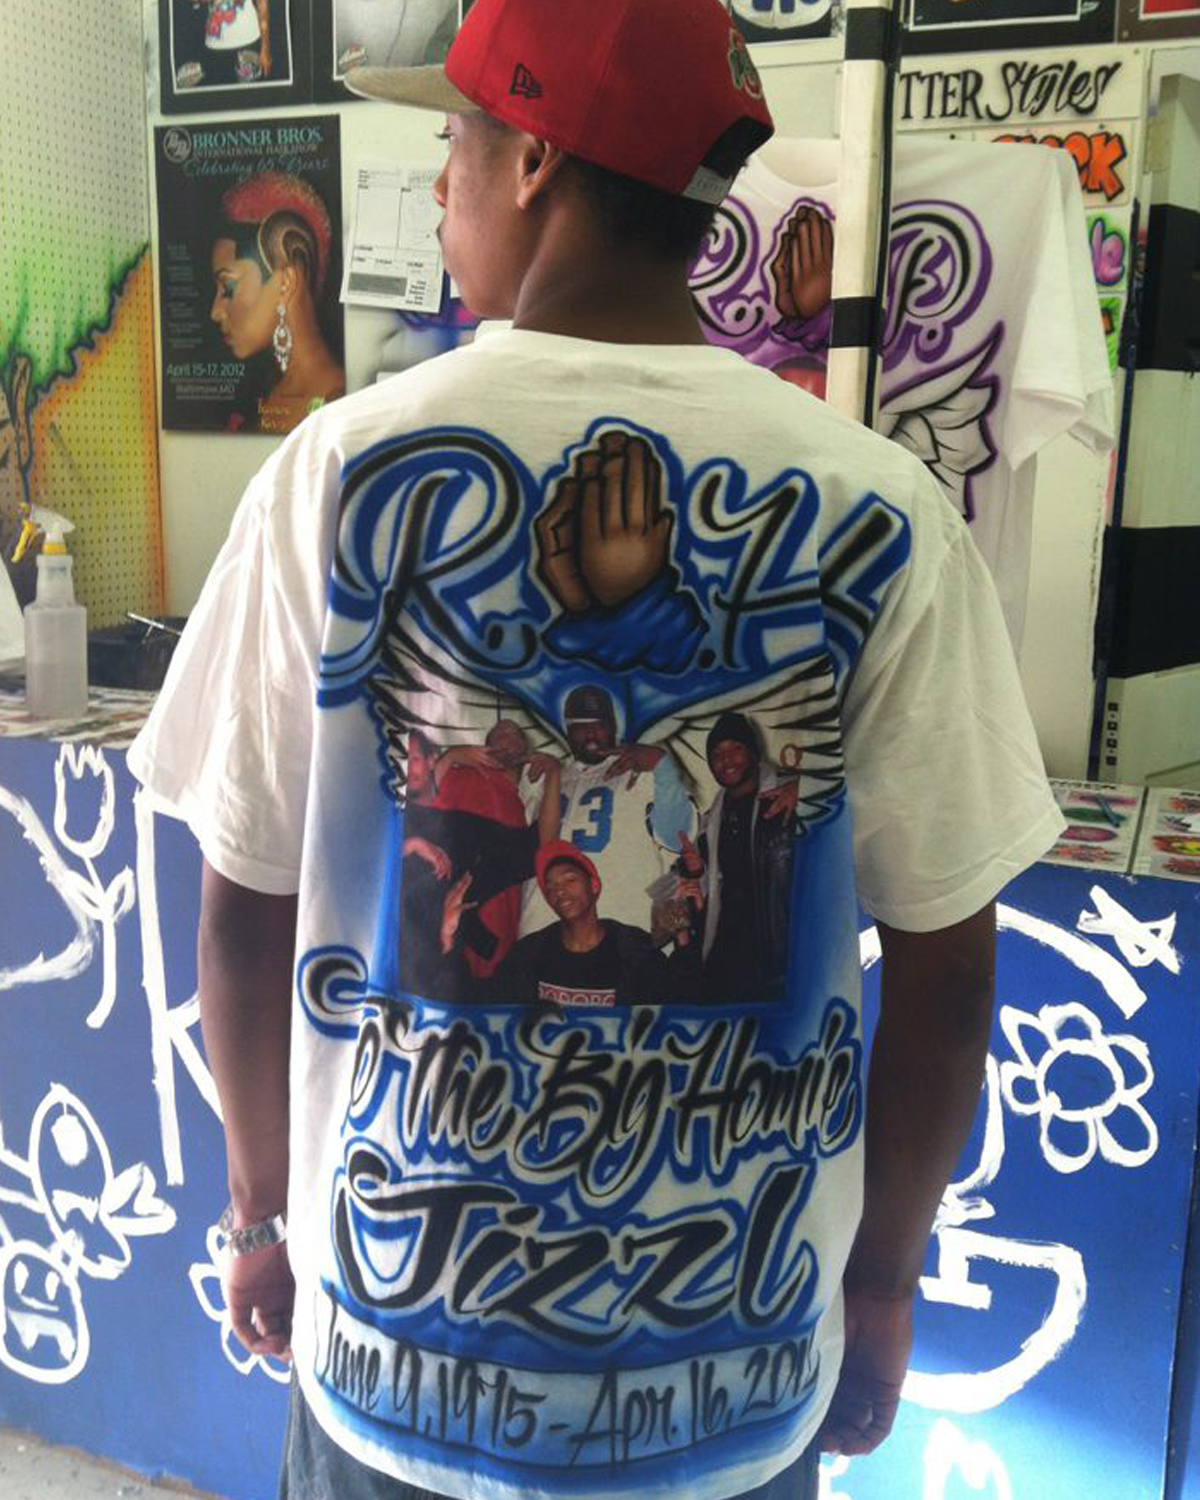 Airbrush T Shirt Designs | Airbrushed Rip Memorial Designs By Sugaray Starting At 35 Sugar